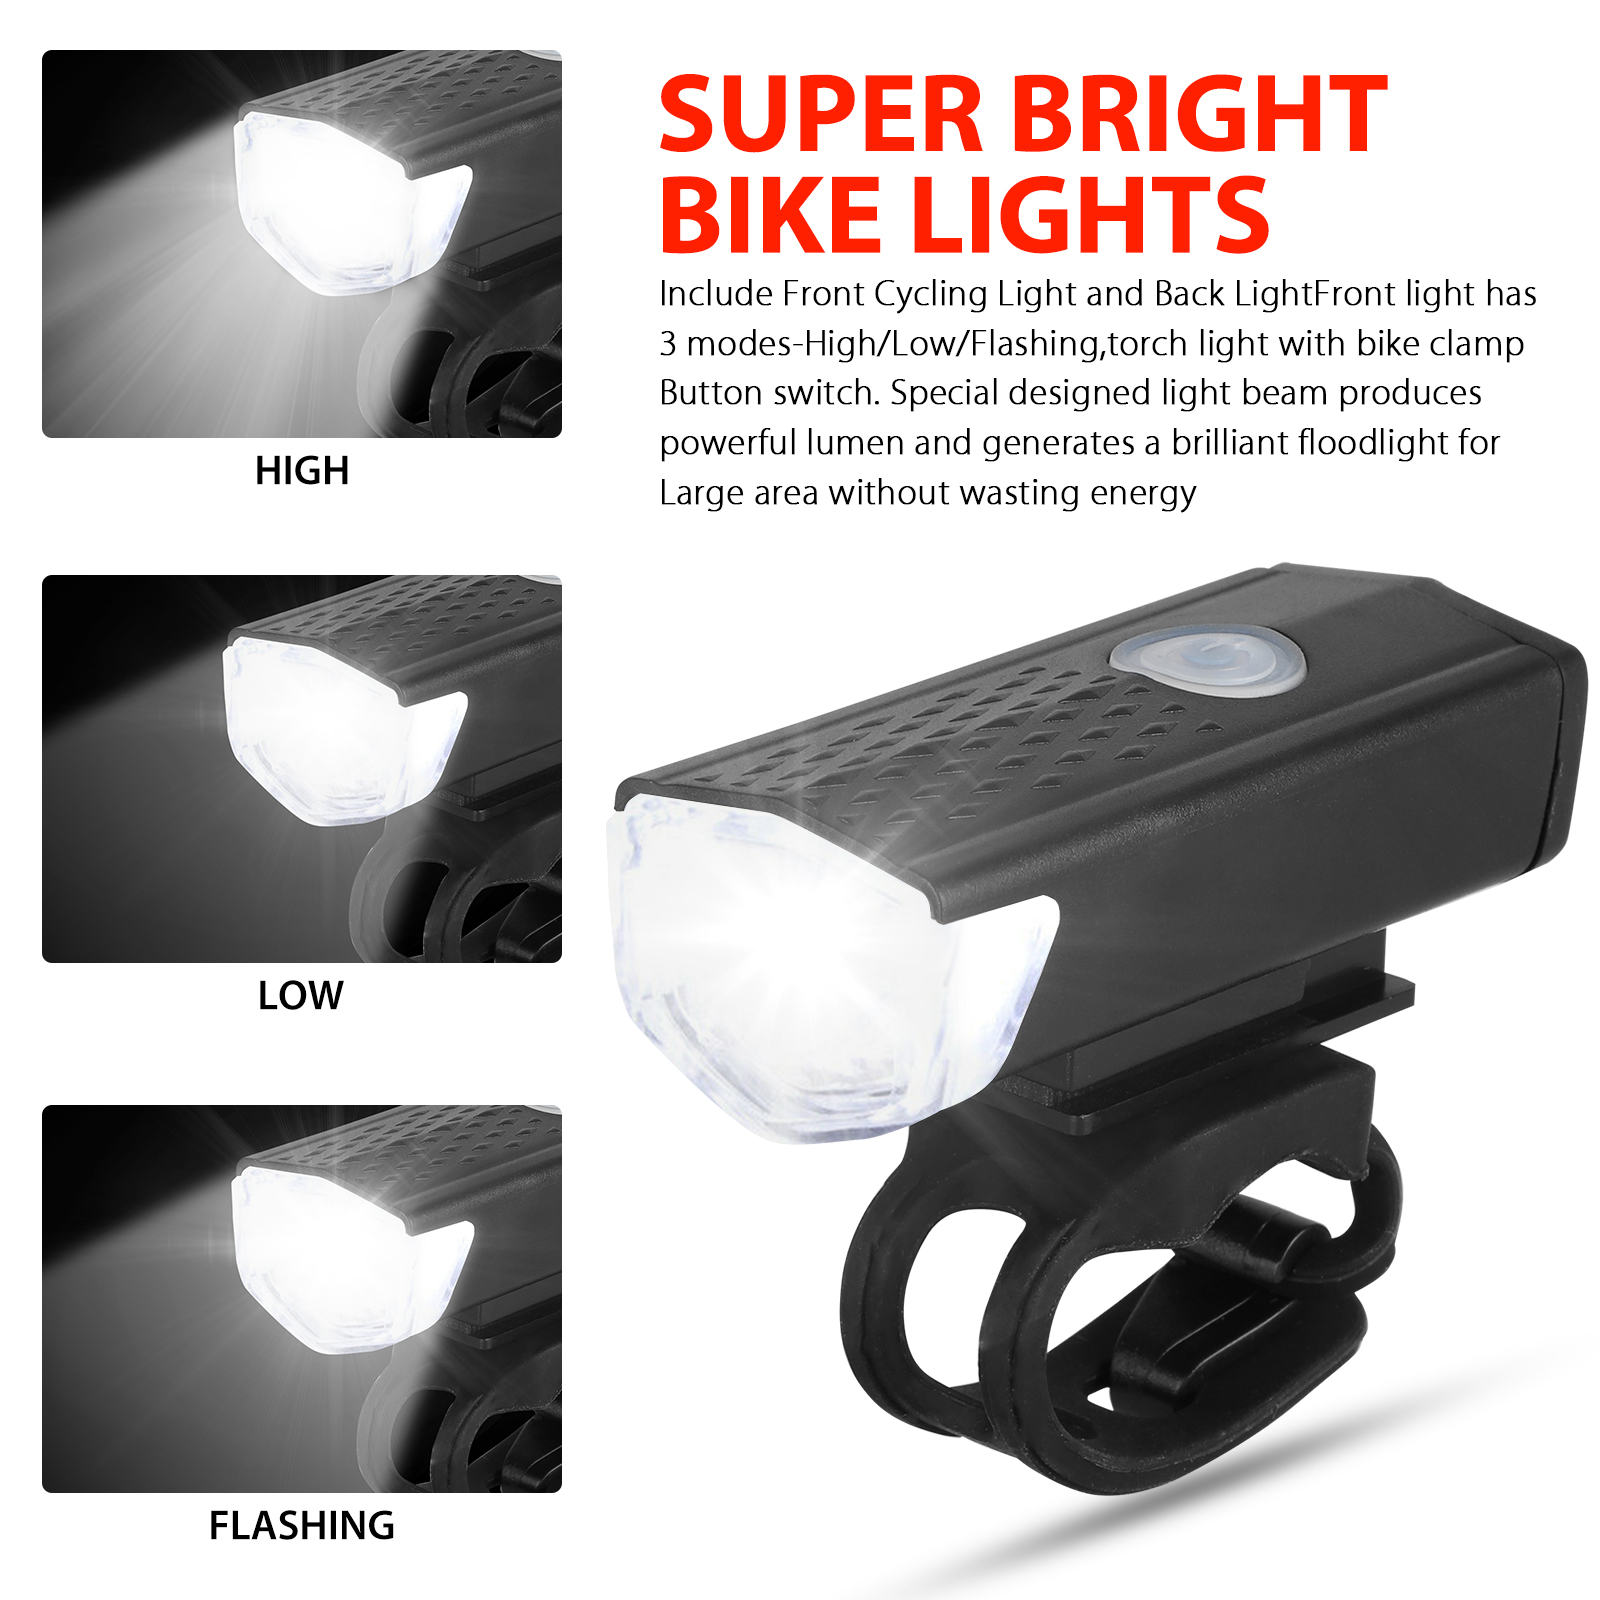 thumbnail 2 - LED-USB-Rechargeable-Bycicle-Light-Headlamp-Headlight-Bike-Front-Rear-Lamp-3Mode